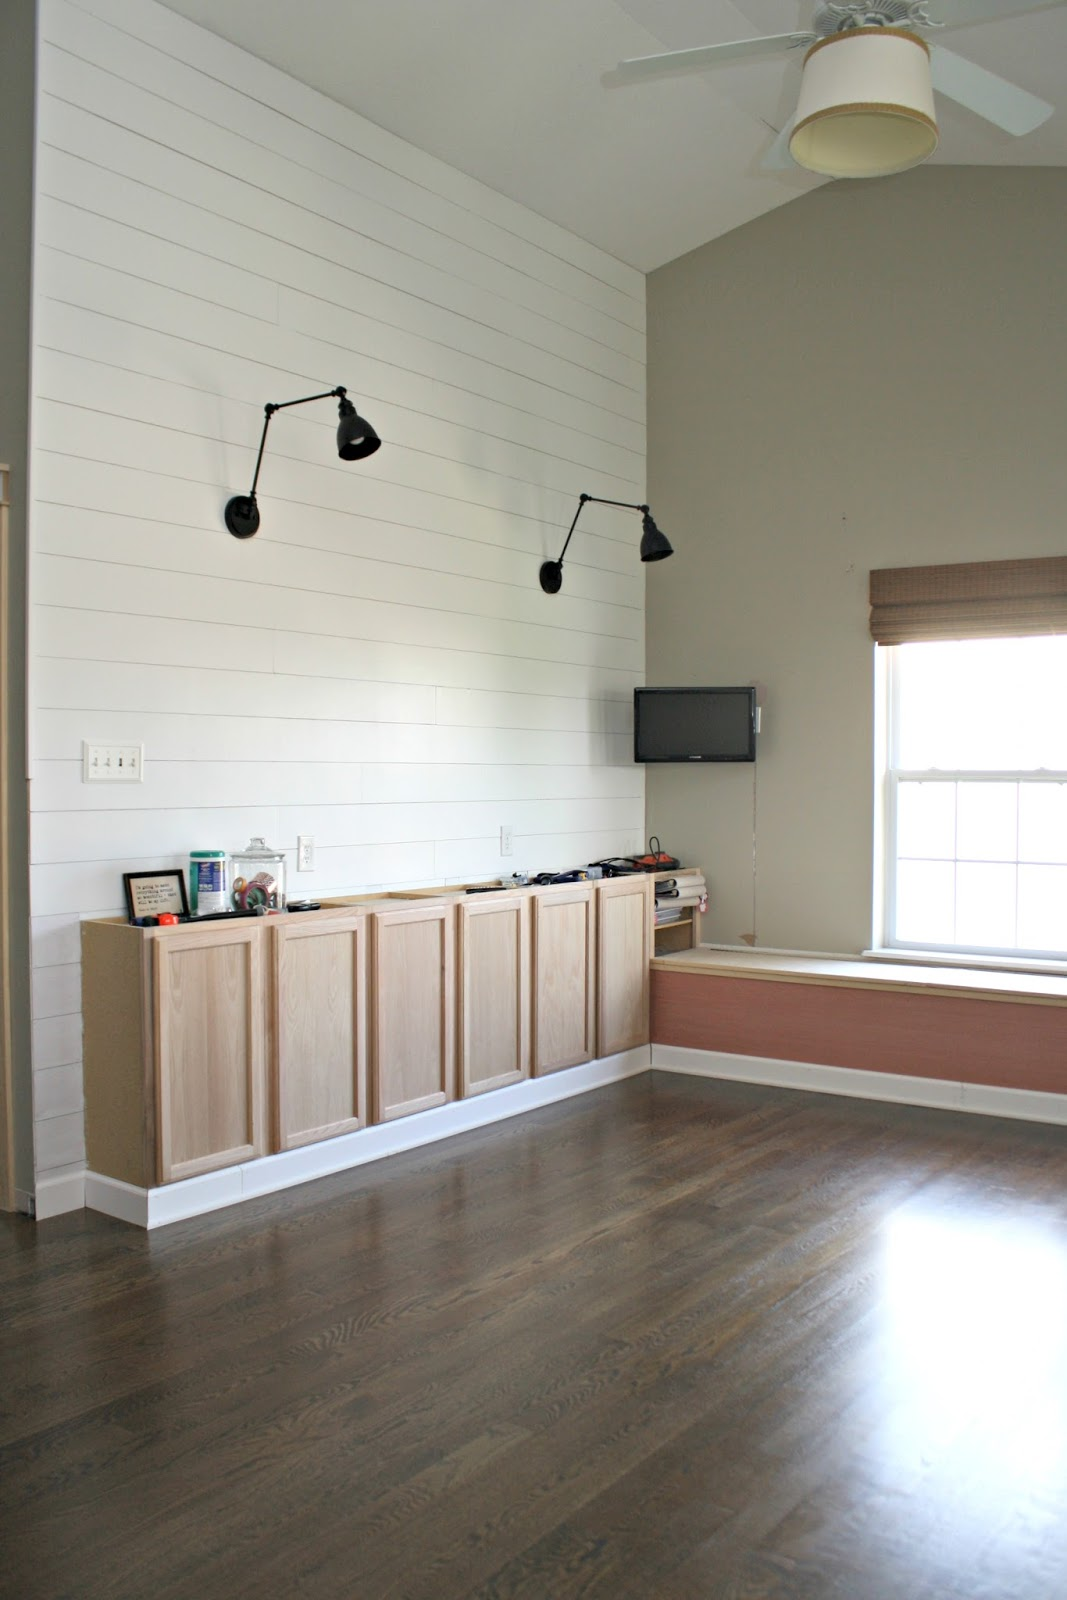 How To Add The Shiplap Look To Your Home For A Lot Less